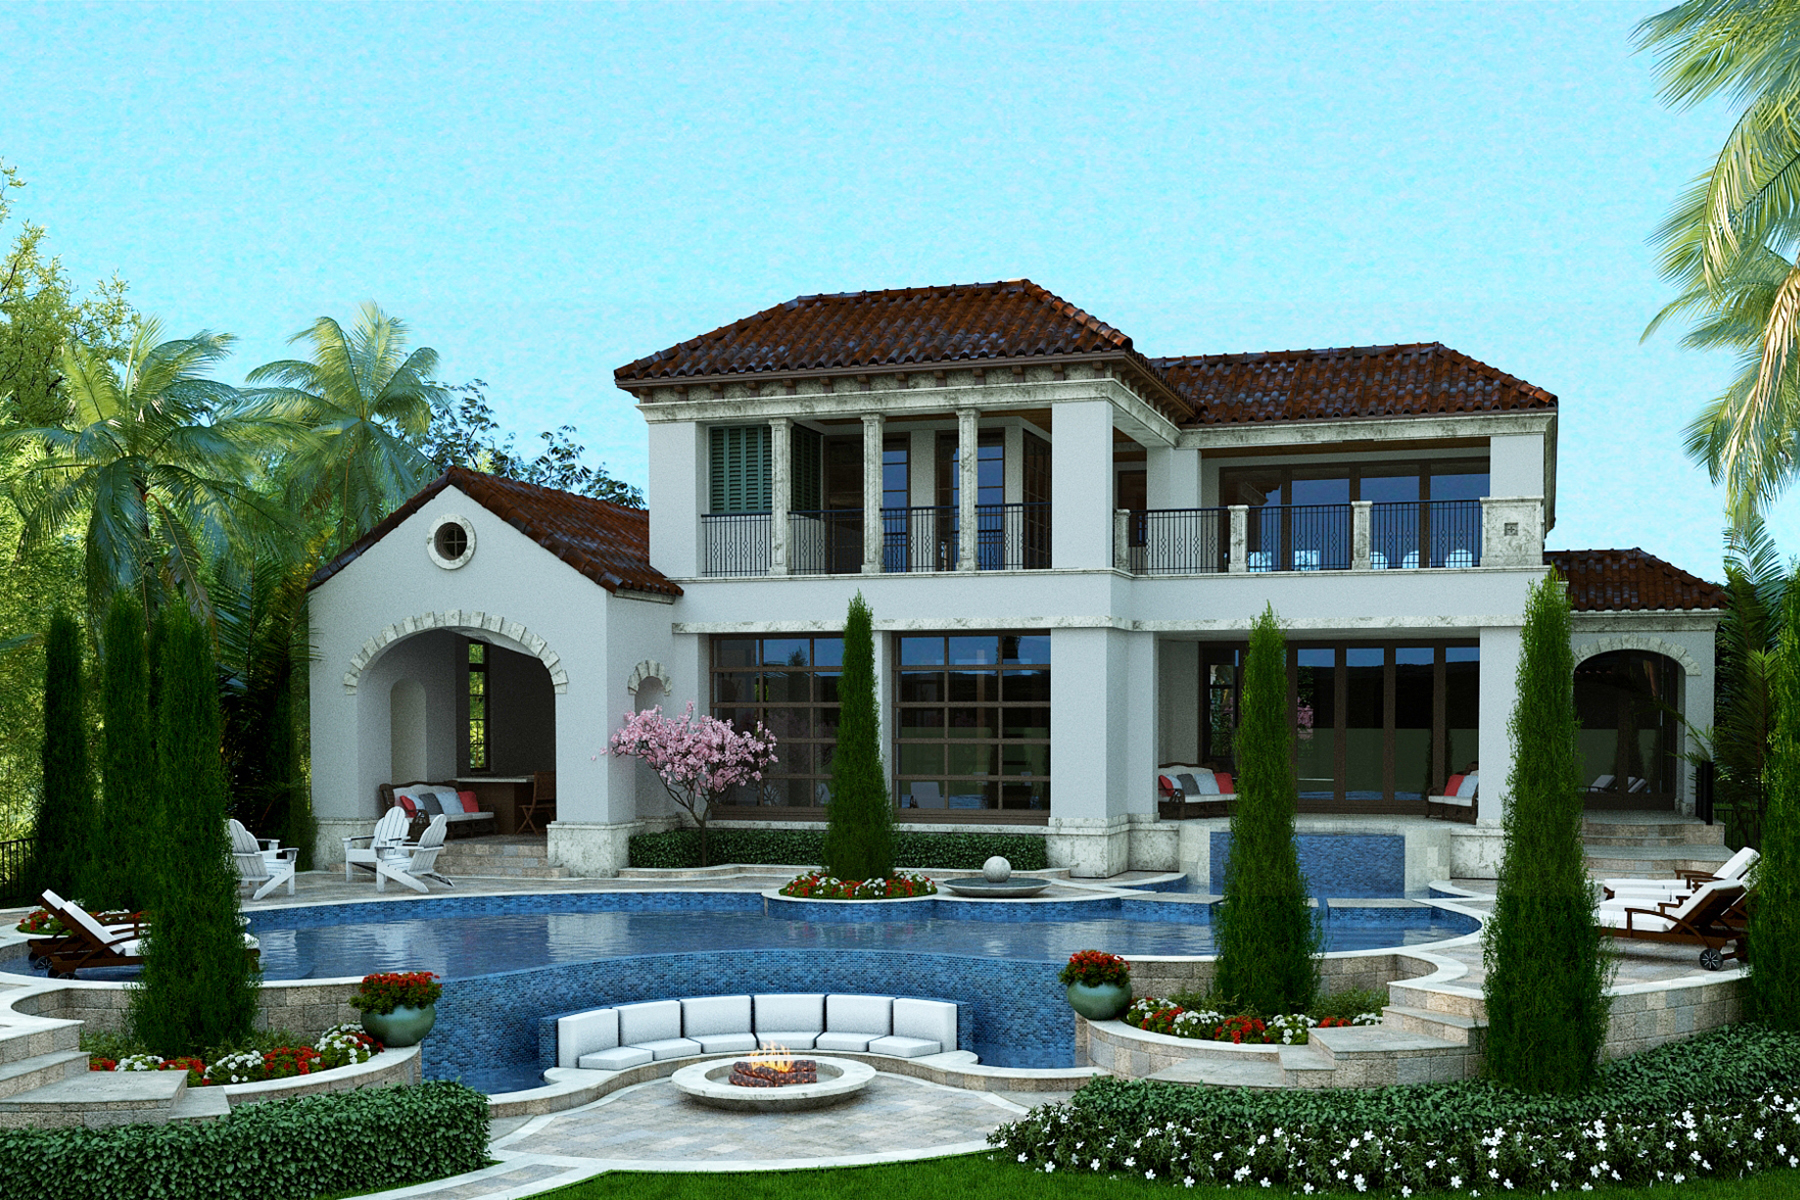 Villa per Vendita alle ore PORT ROYAL - PORT ROYAL CUTLASS COVE 4233 Gordon Dr Naples, Florida 34102 Stati Uniti